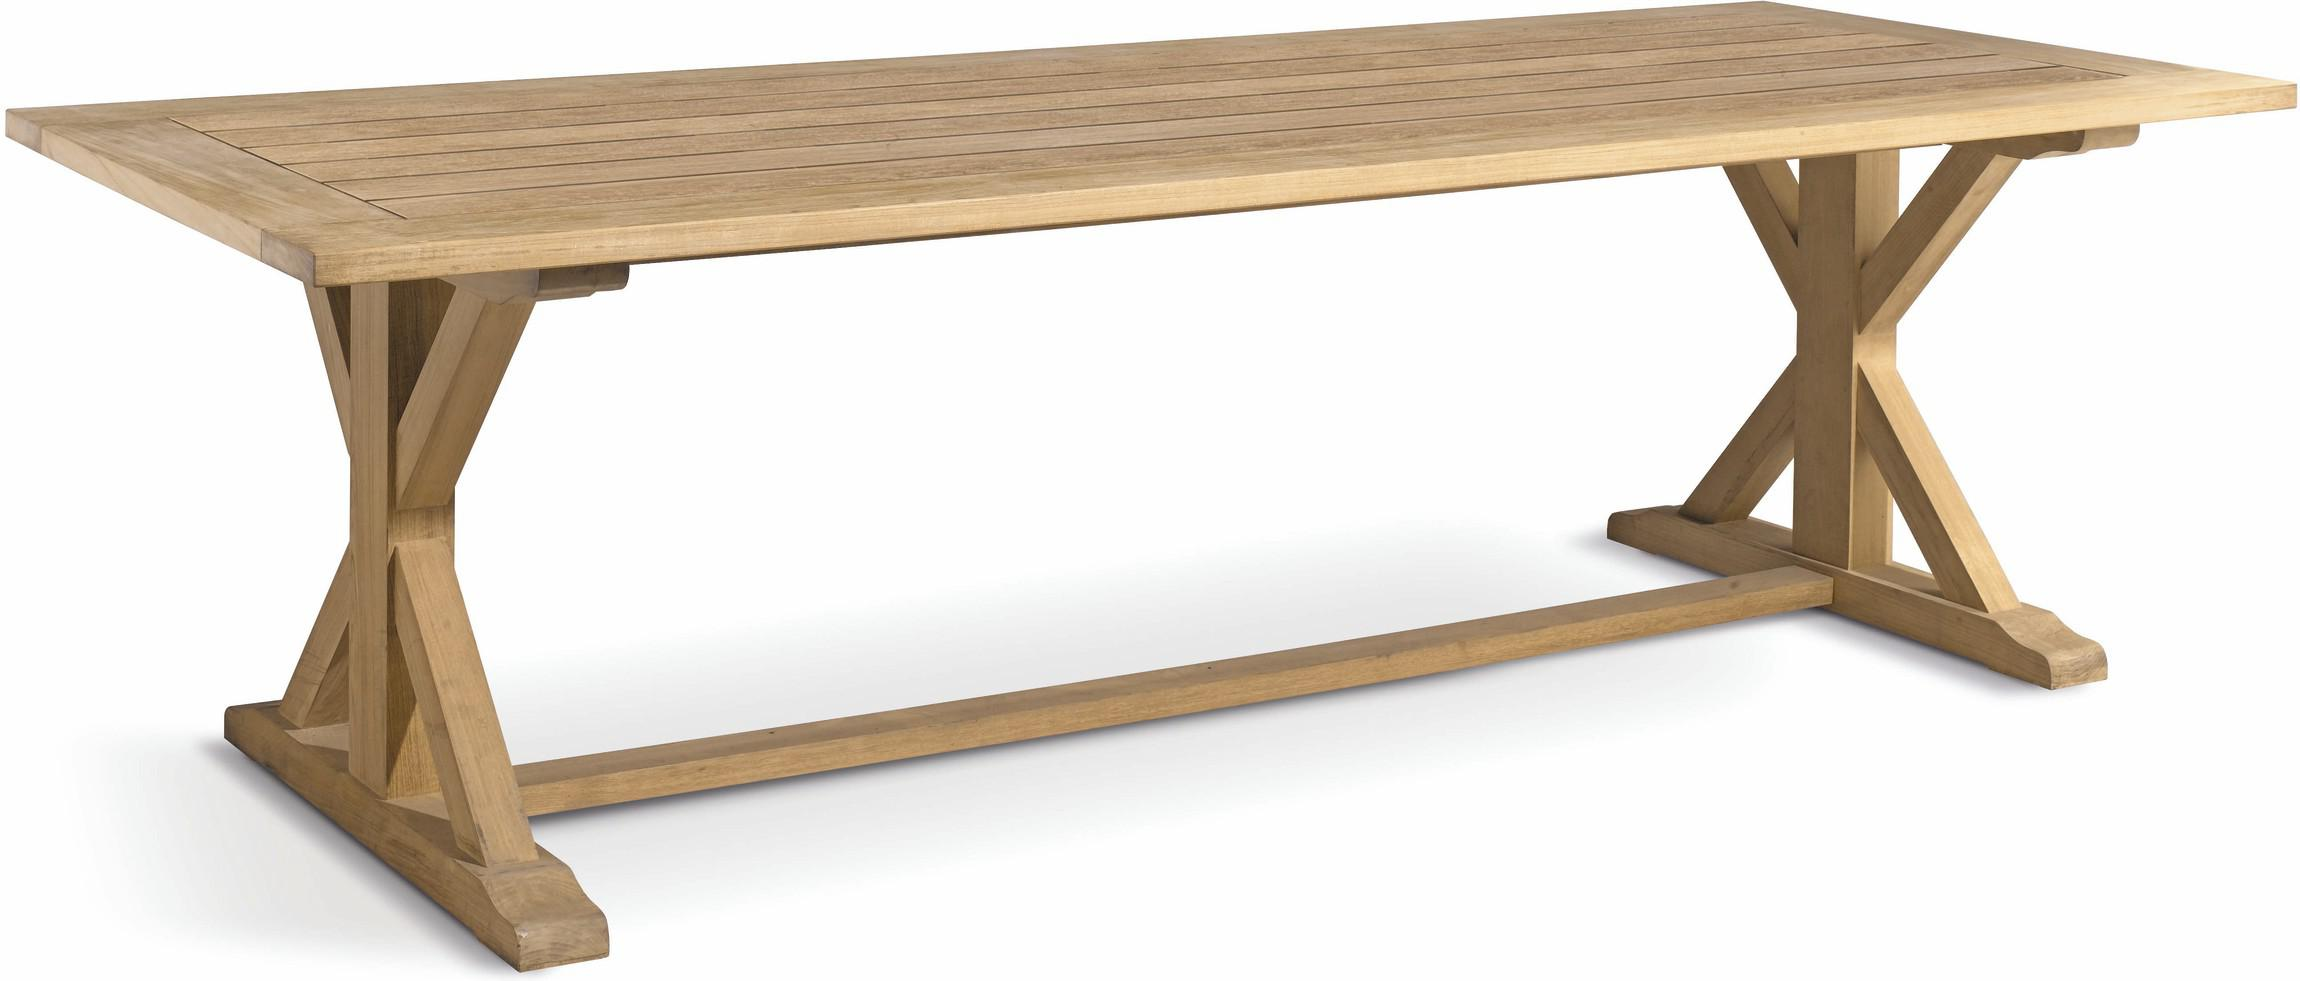 Livorno Dining table - Teak - Teak 400